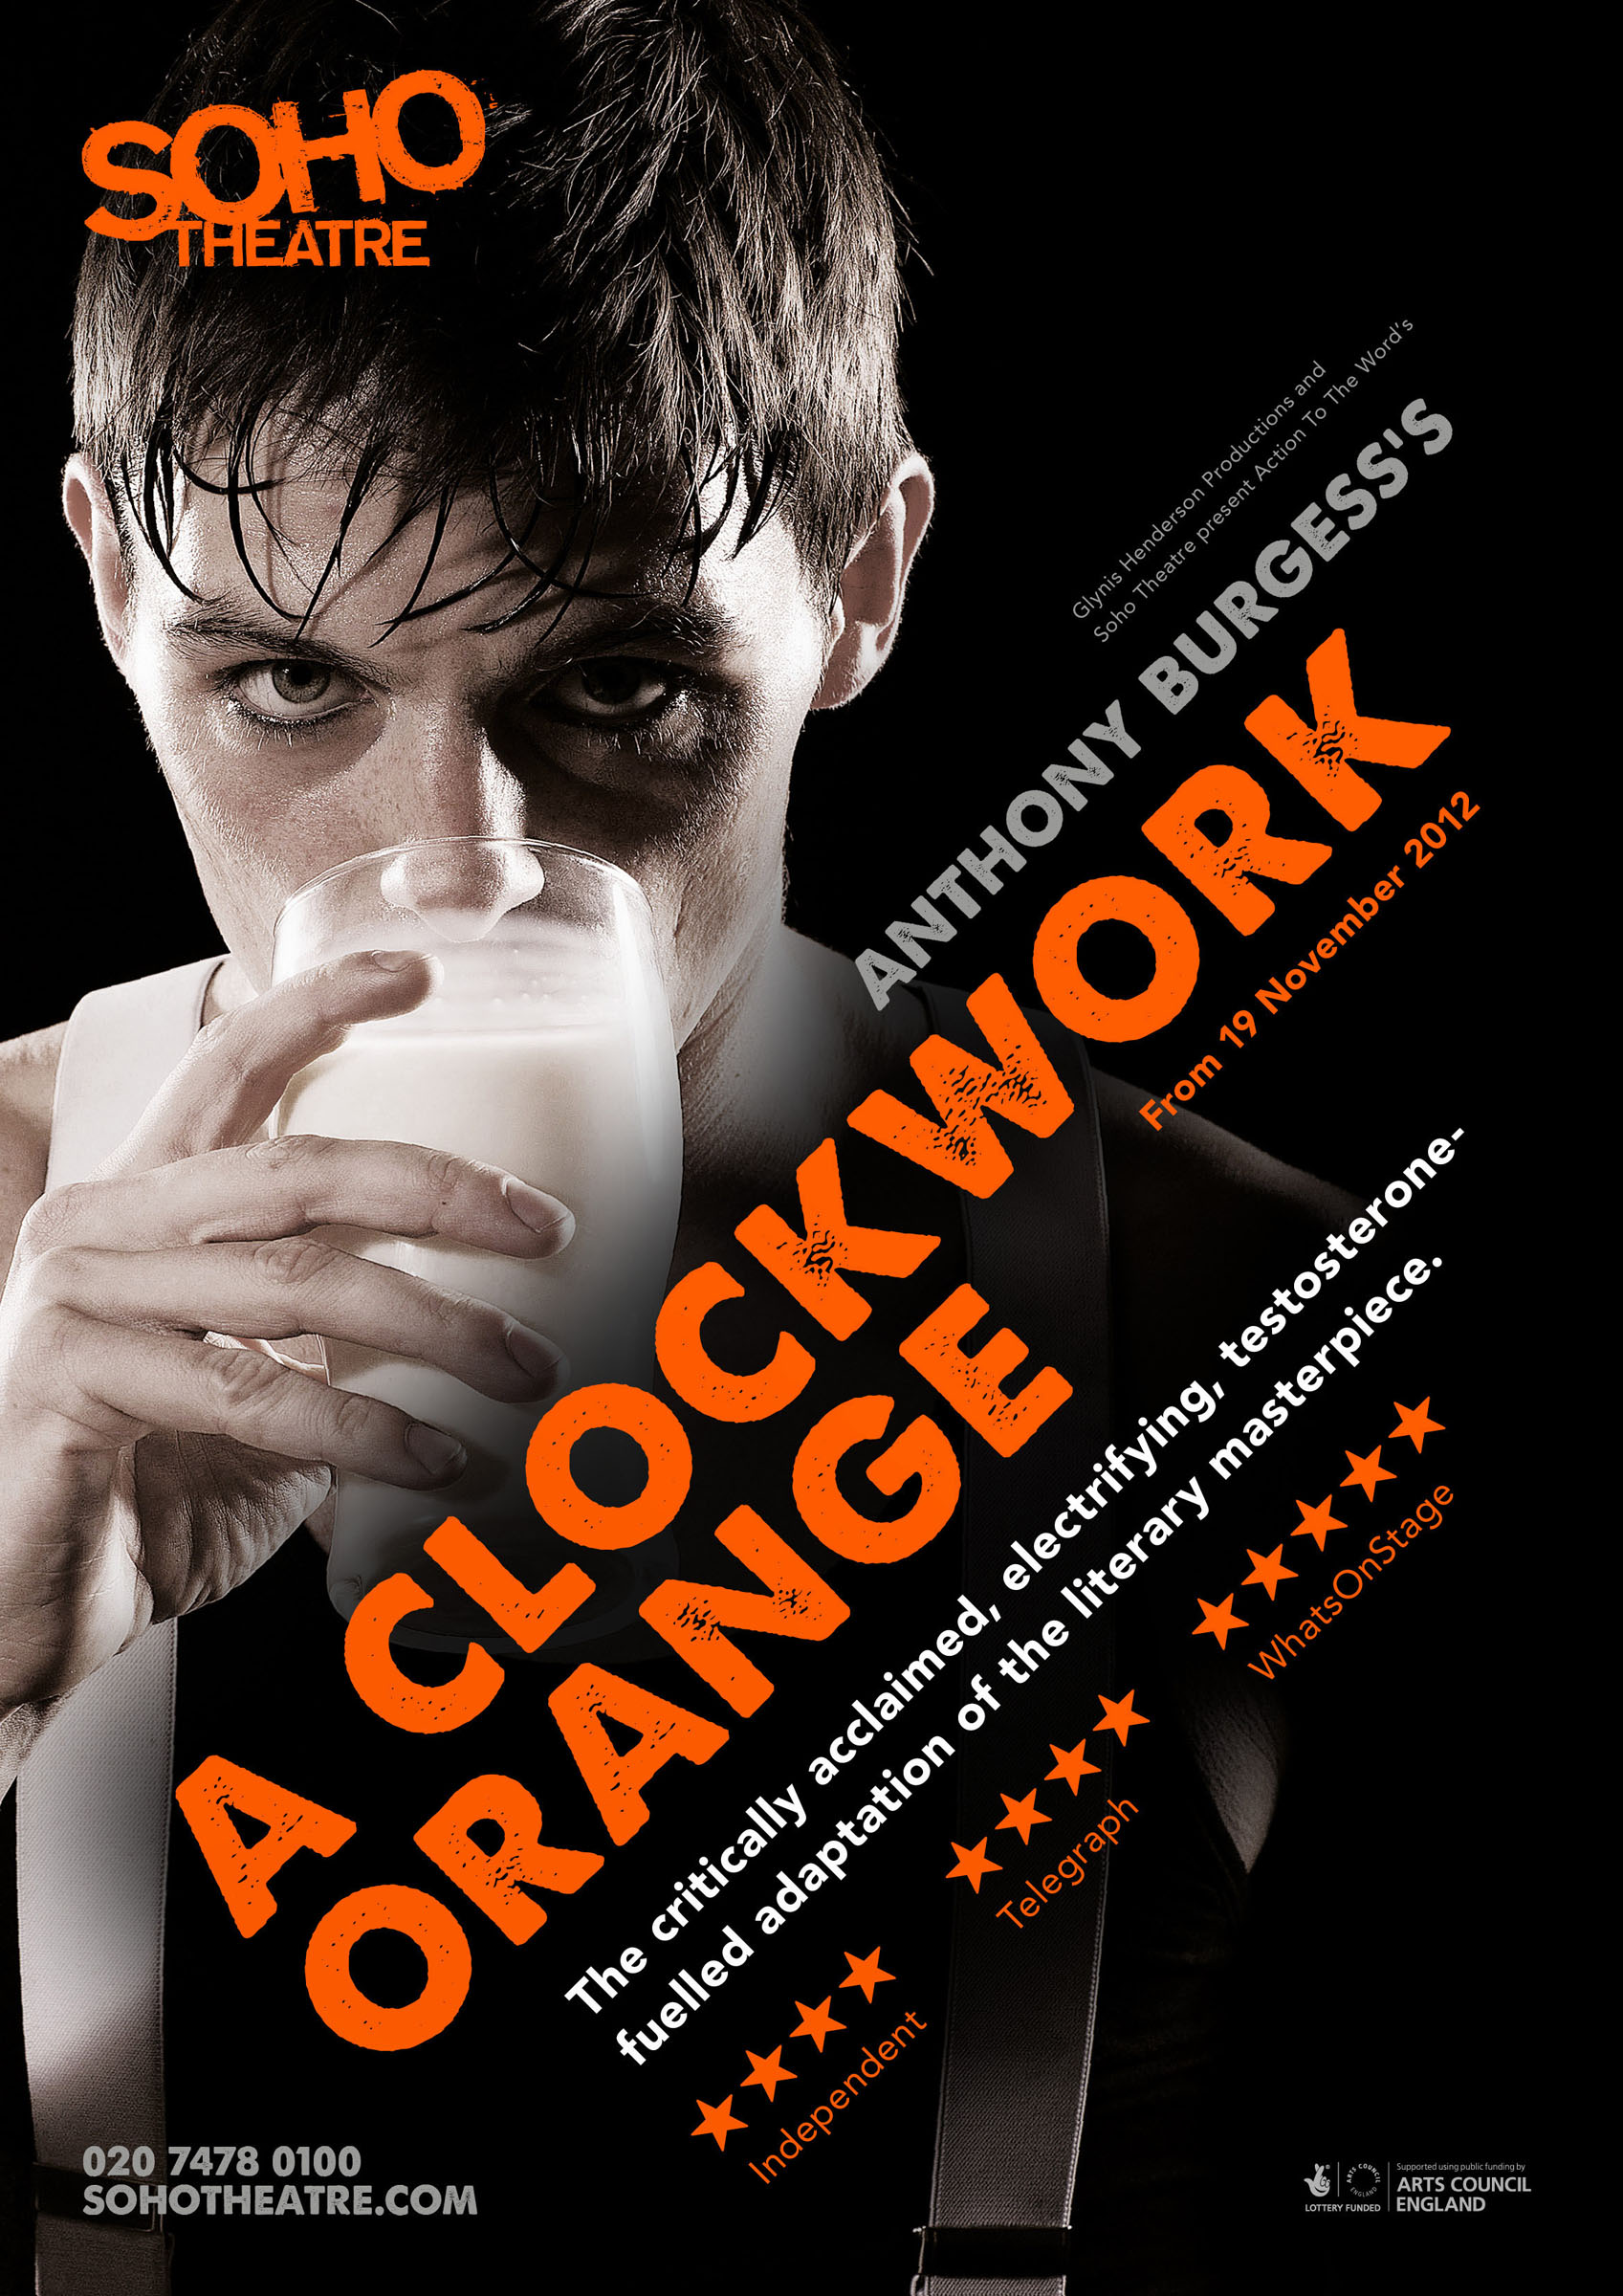 Promotional poster for A Clockwork Orange at the Soho Theatre